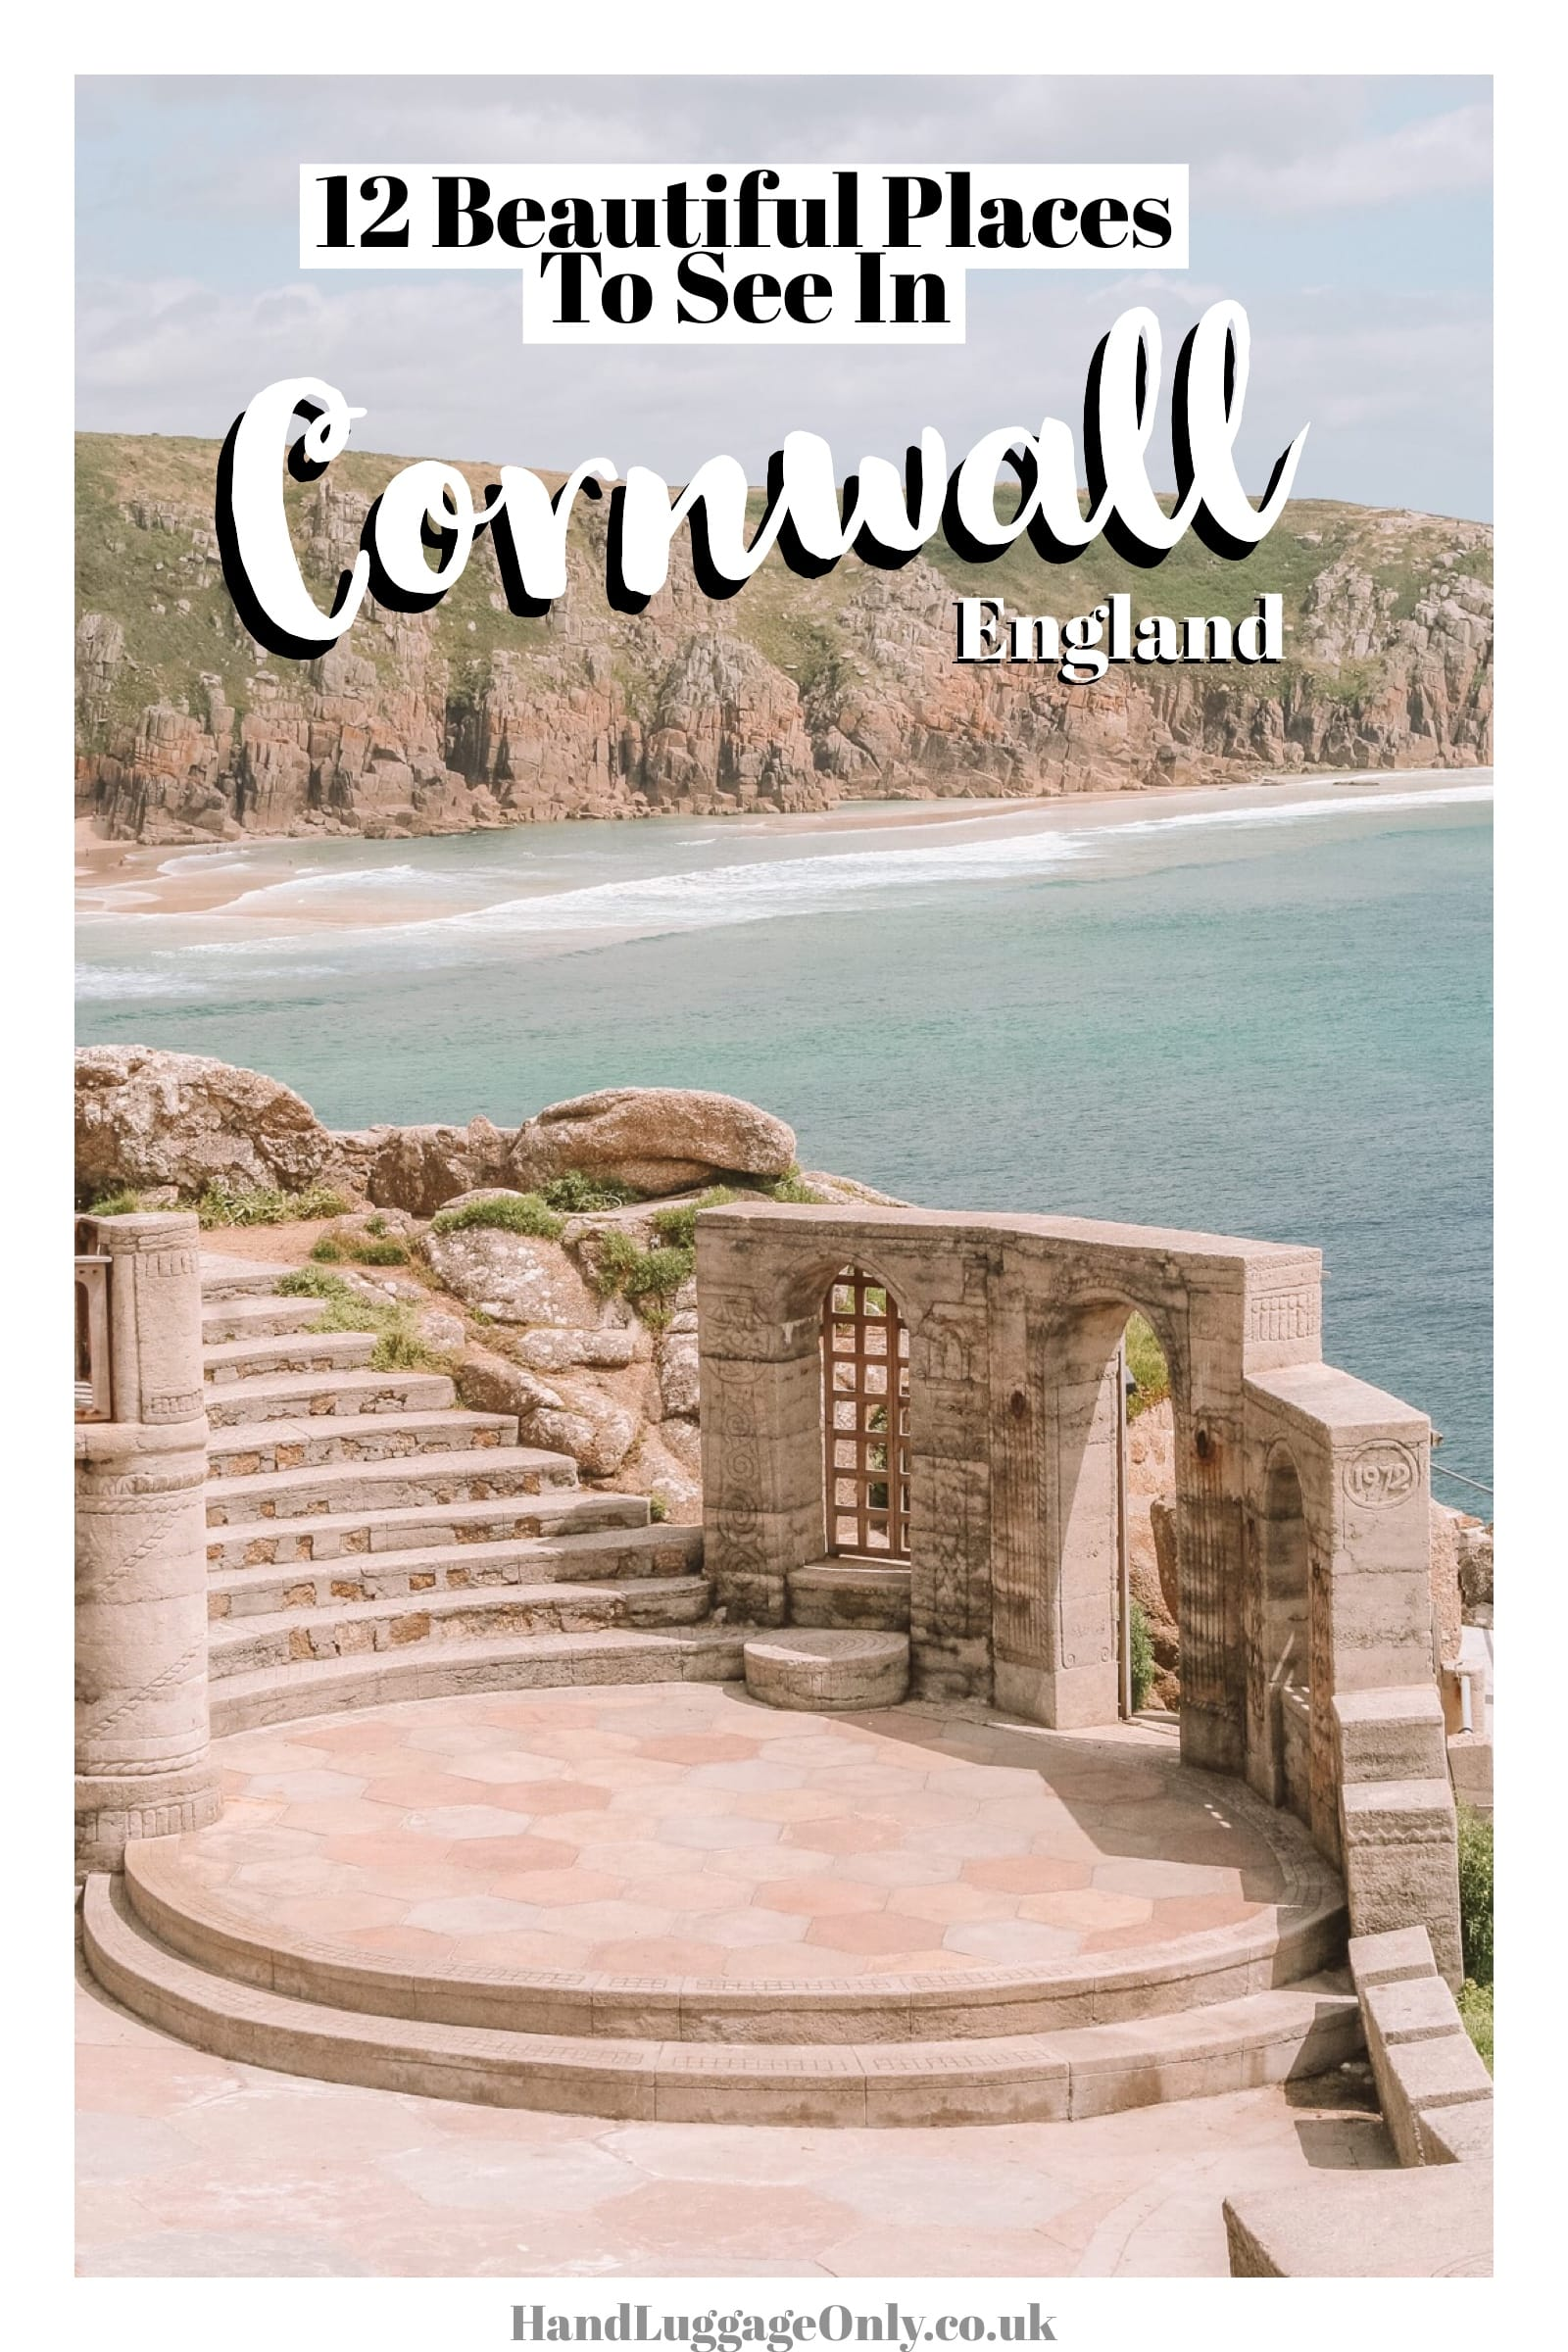 12 Amazing Things To See In Cornwall, England (1)